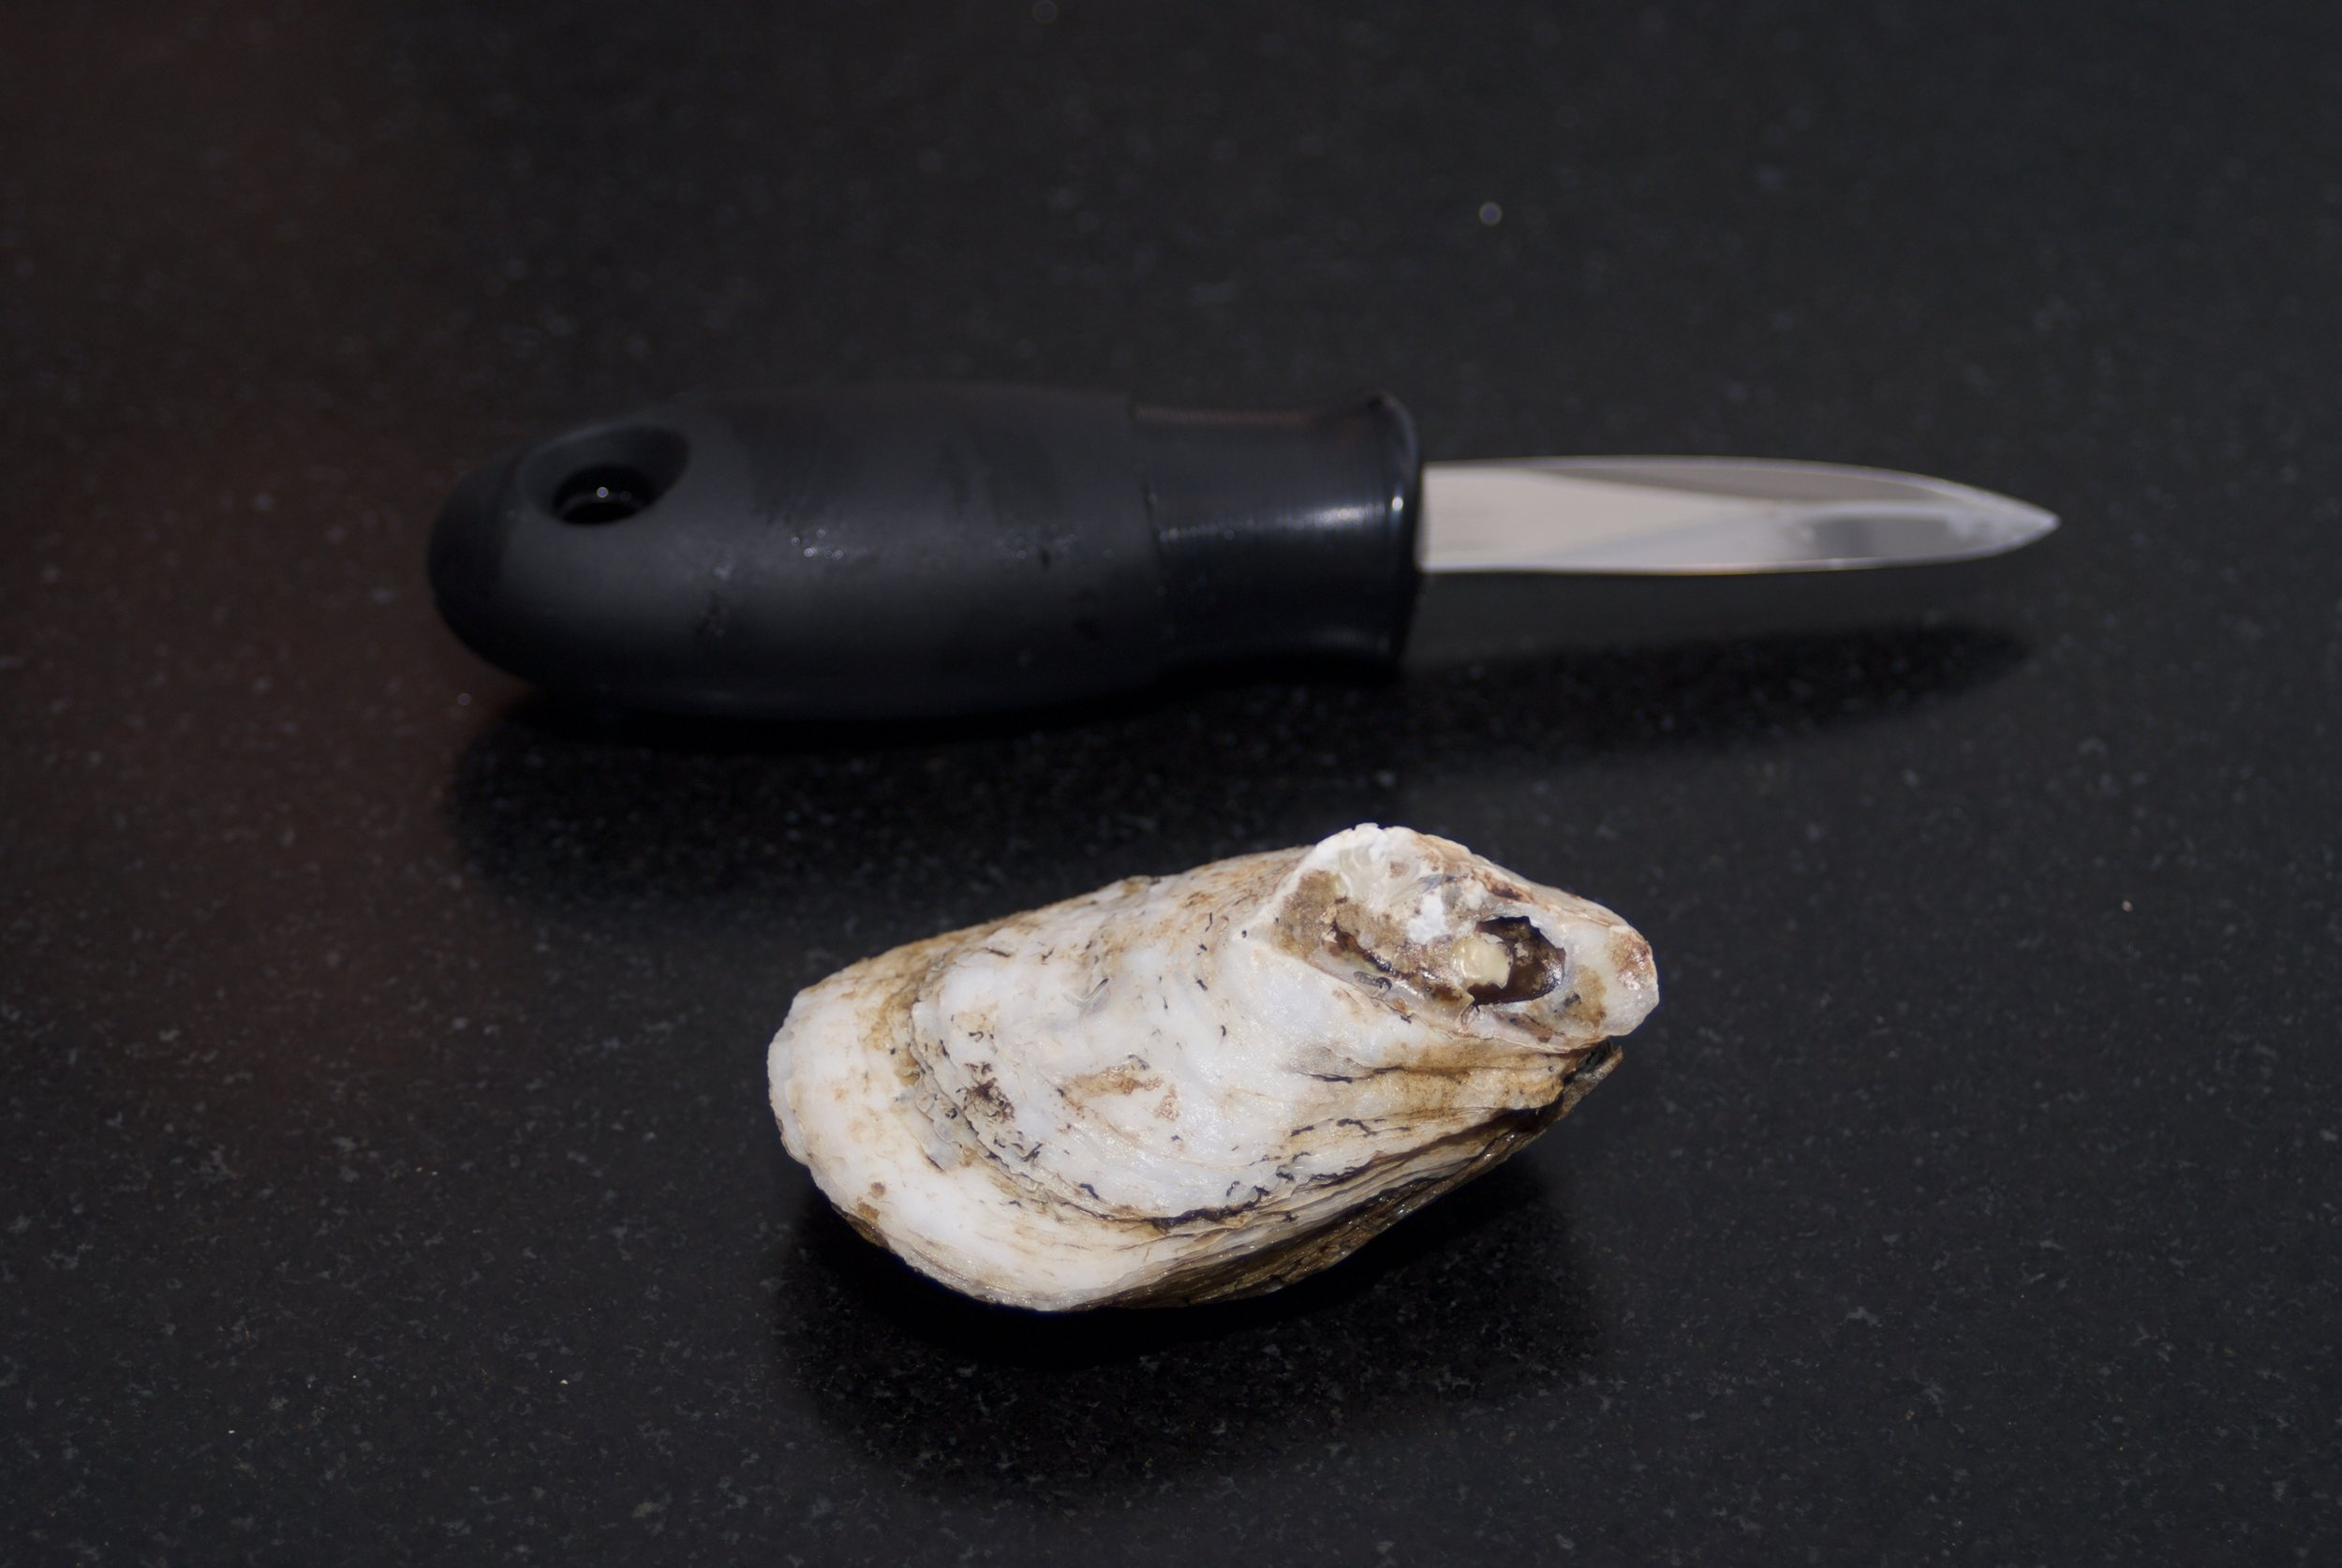 Tool of the trade - this oyster knife was $8 on Amazon and worked just fine, although I've seen way more expensive brands. The oysters here are Blue Points from Long Island and I was able to get them at my local fish market for $1/oyster. You're also going to need a hand towel.